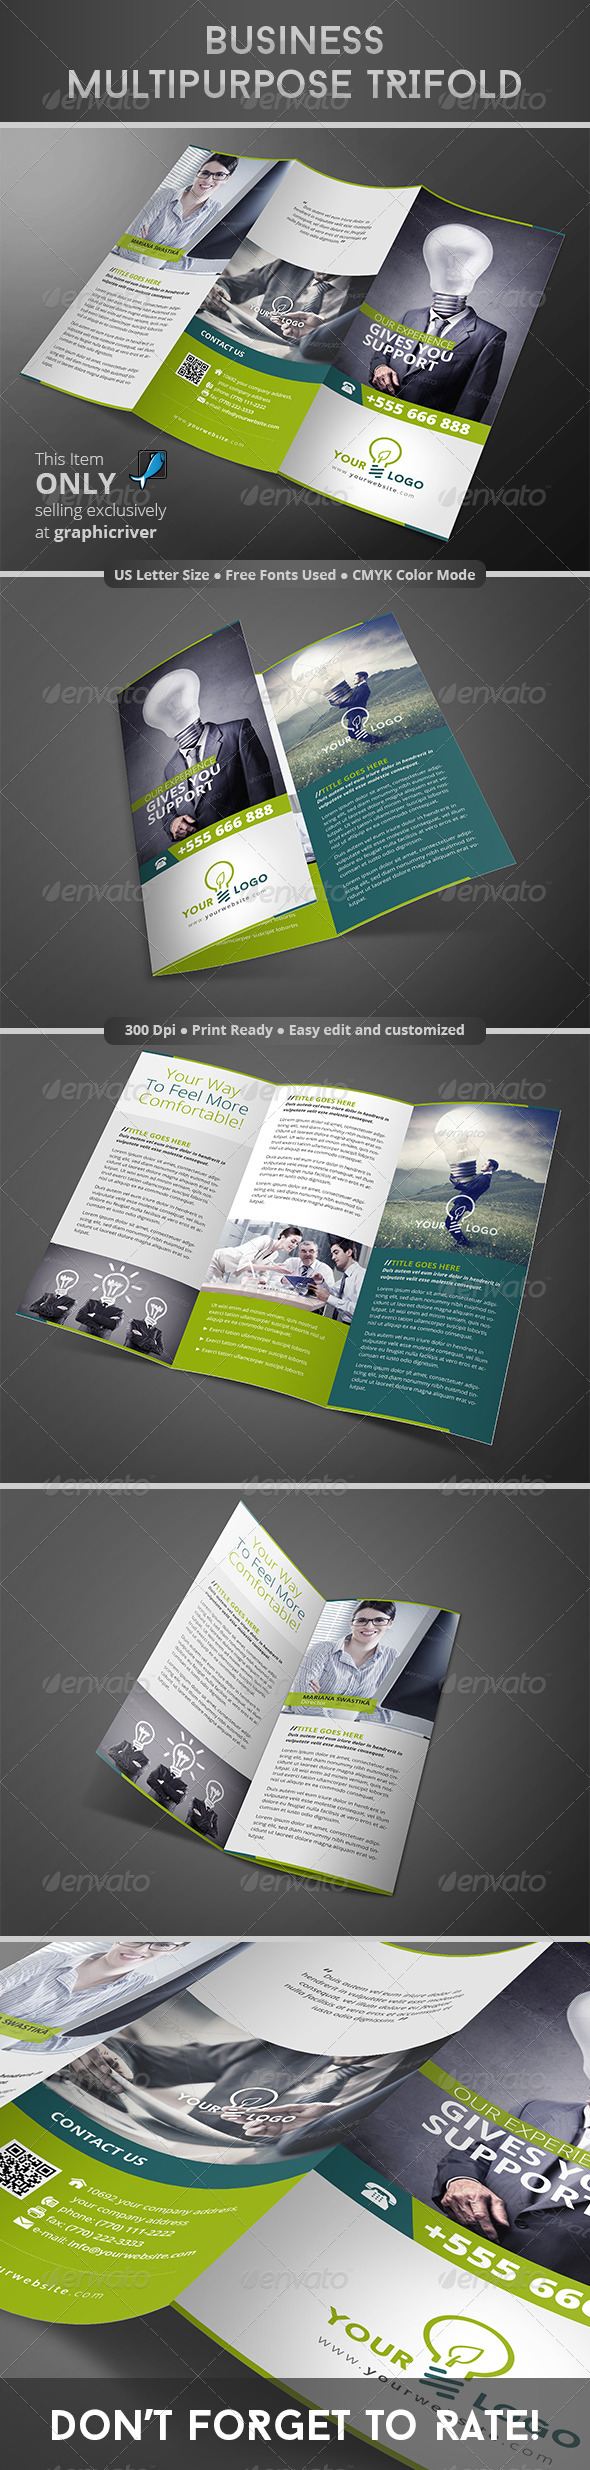 GraphicRiver Business Multipurpose Trifold 8292476